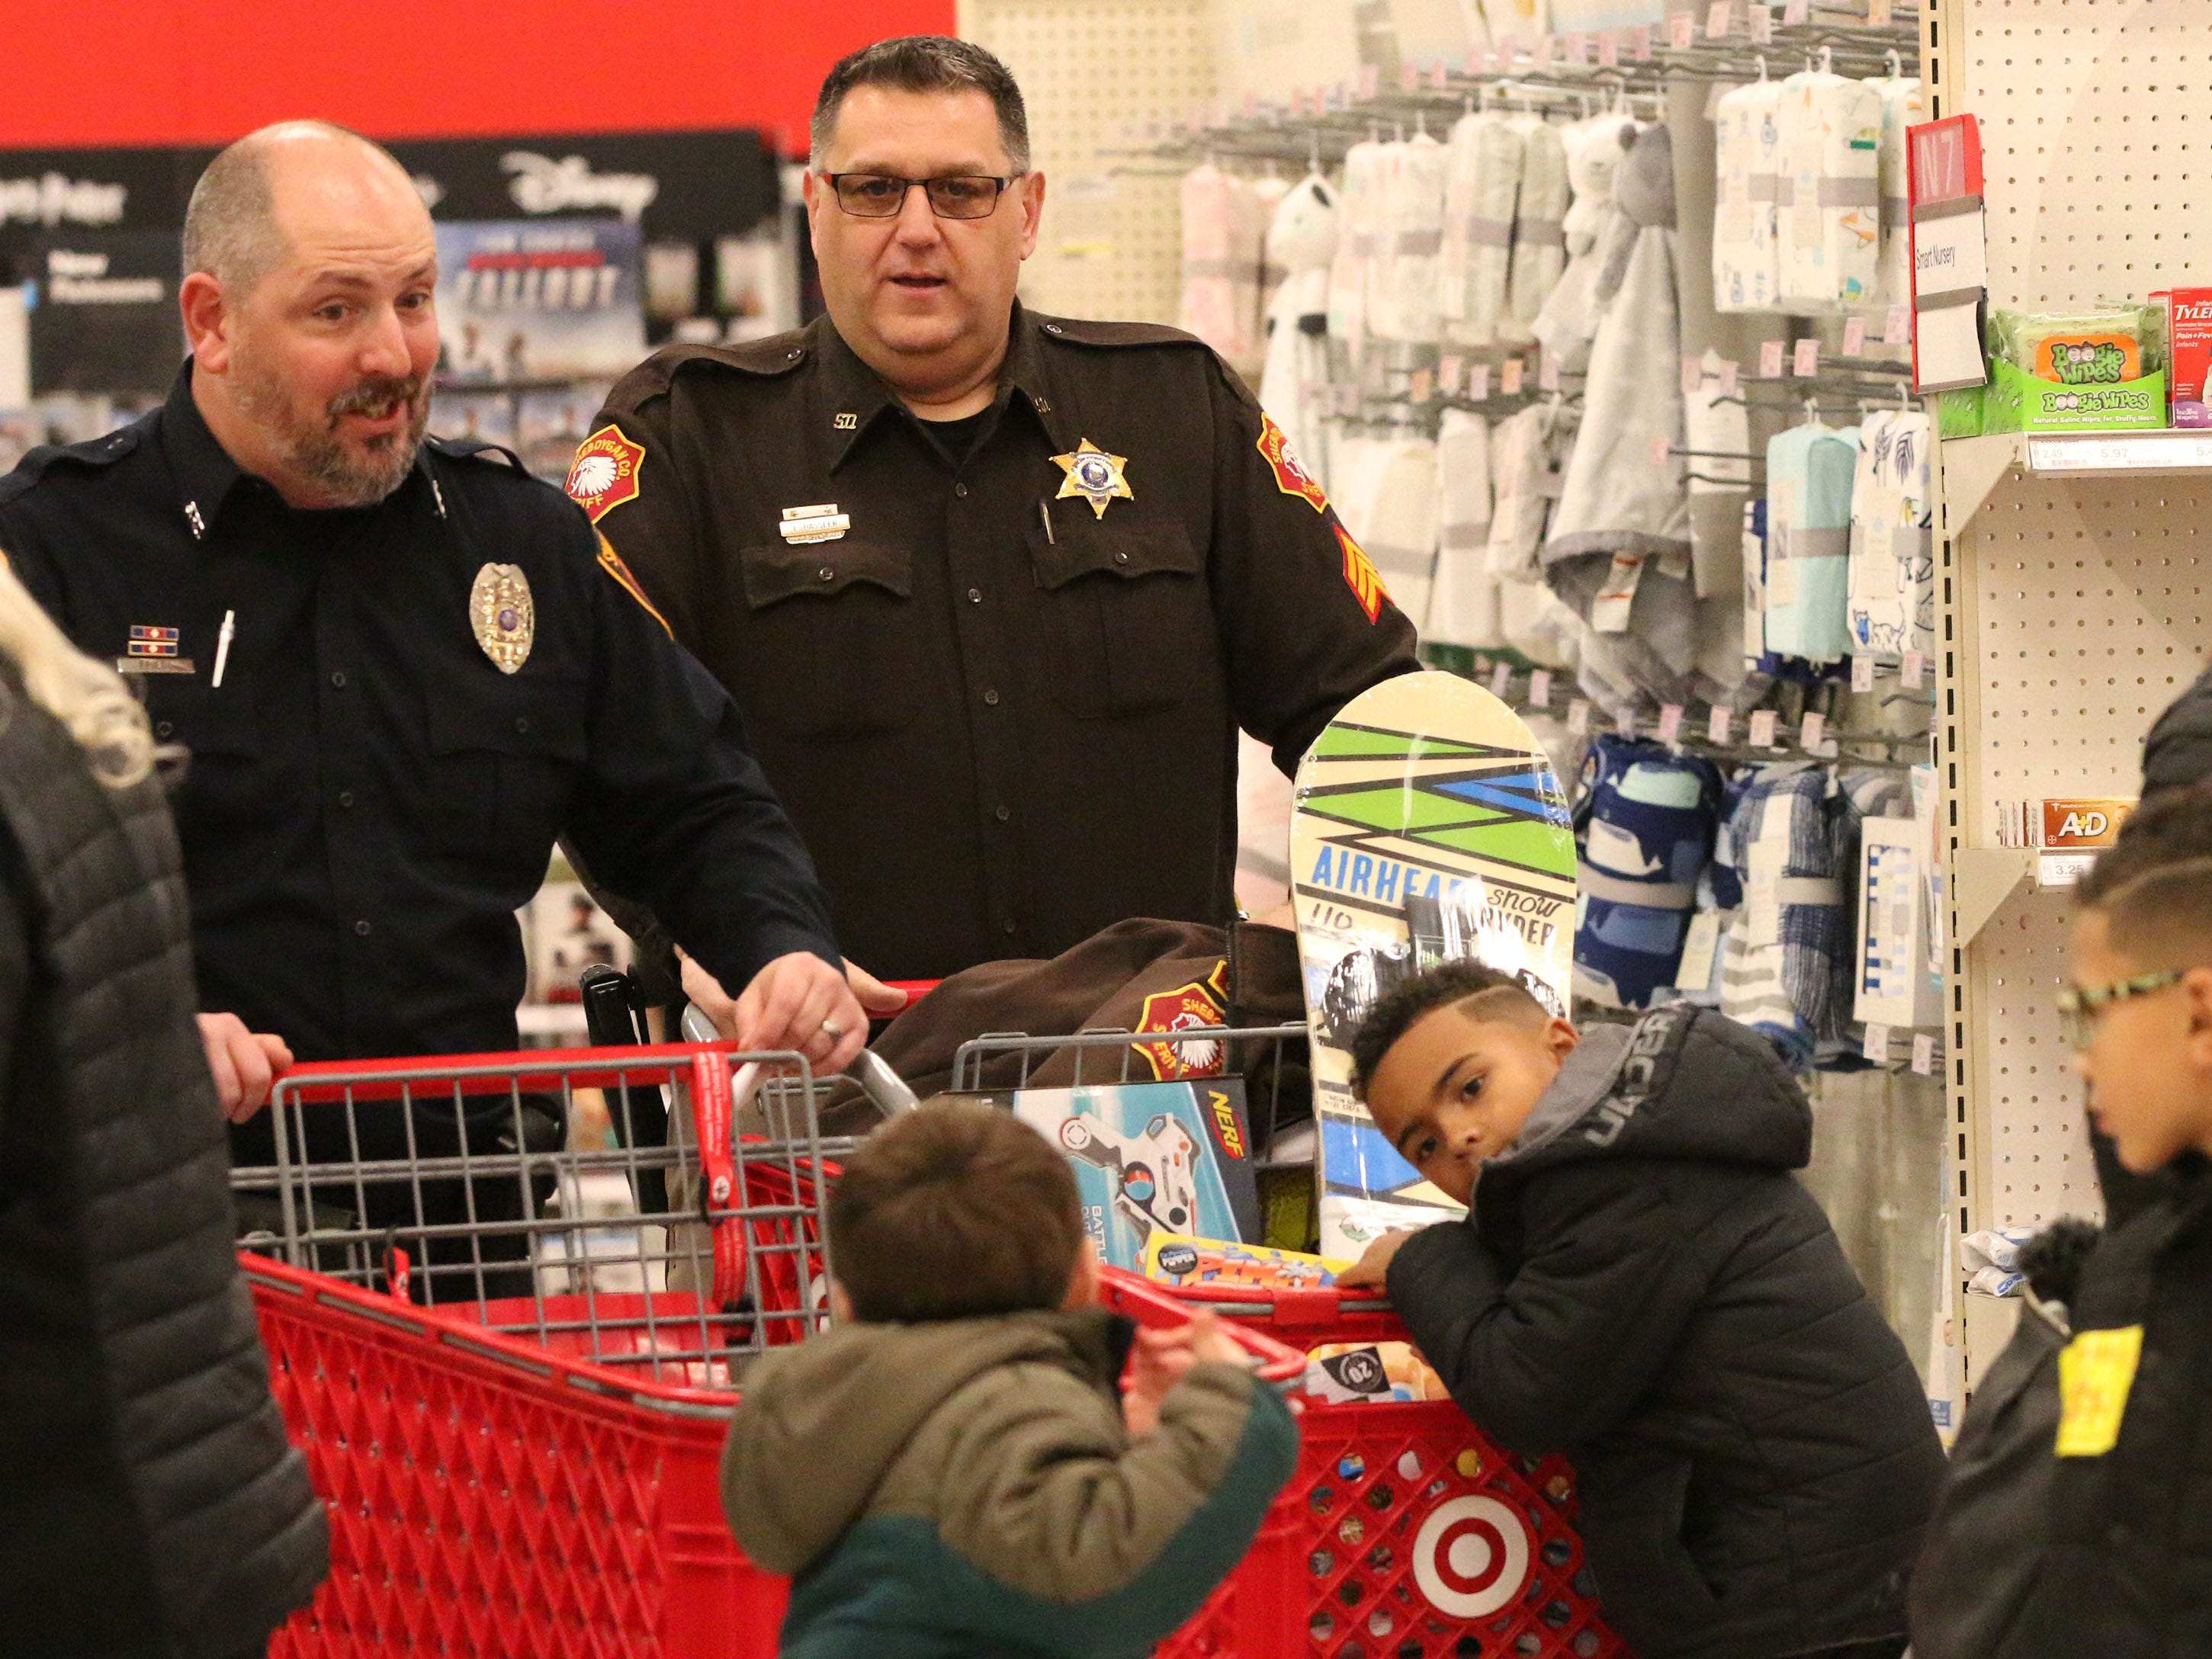 Officers pushed carts and answered questions at Target during Shop with a Cop, Tuesday, December 4, 2018, in Kohler, Wis. The program, in its 21st year, raises funds to give children a chance to buy holiday gifts that they otherwise might not receive.